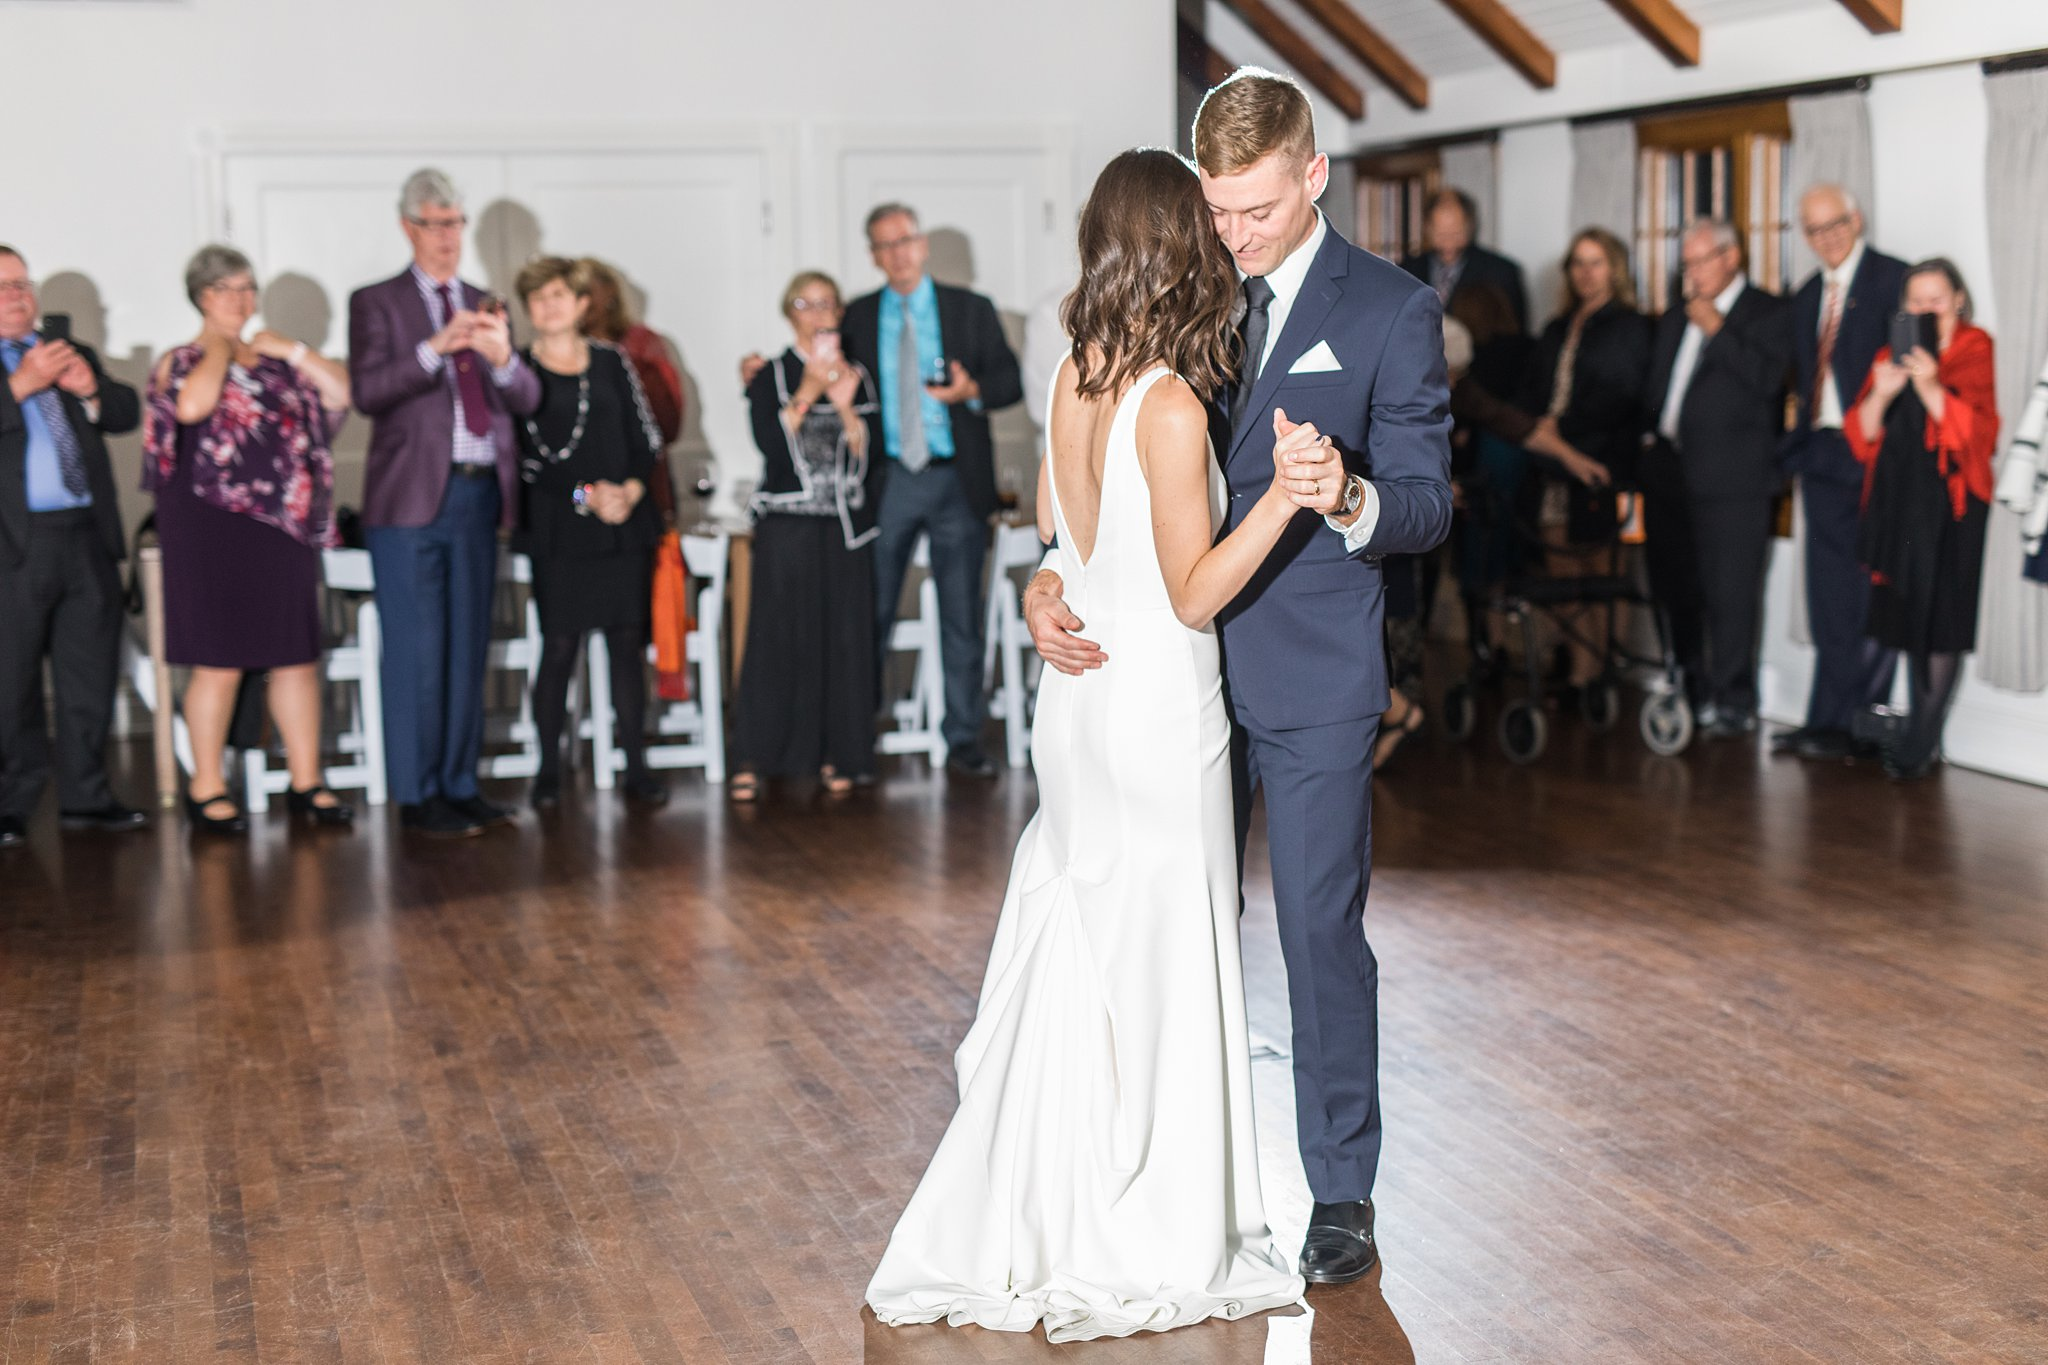 Bride and groom's first dance at the Opinicon Wedding by Amy Pinder Photography